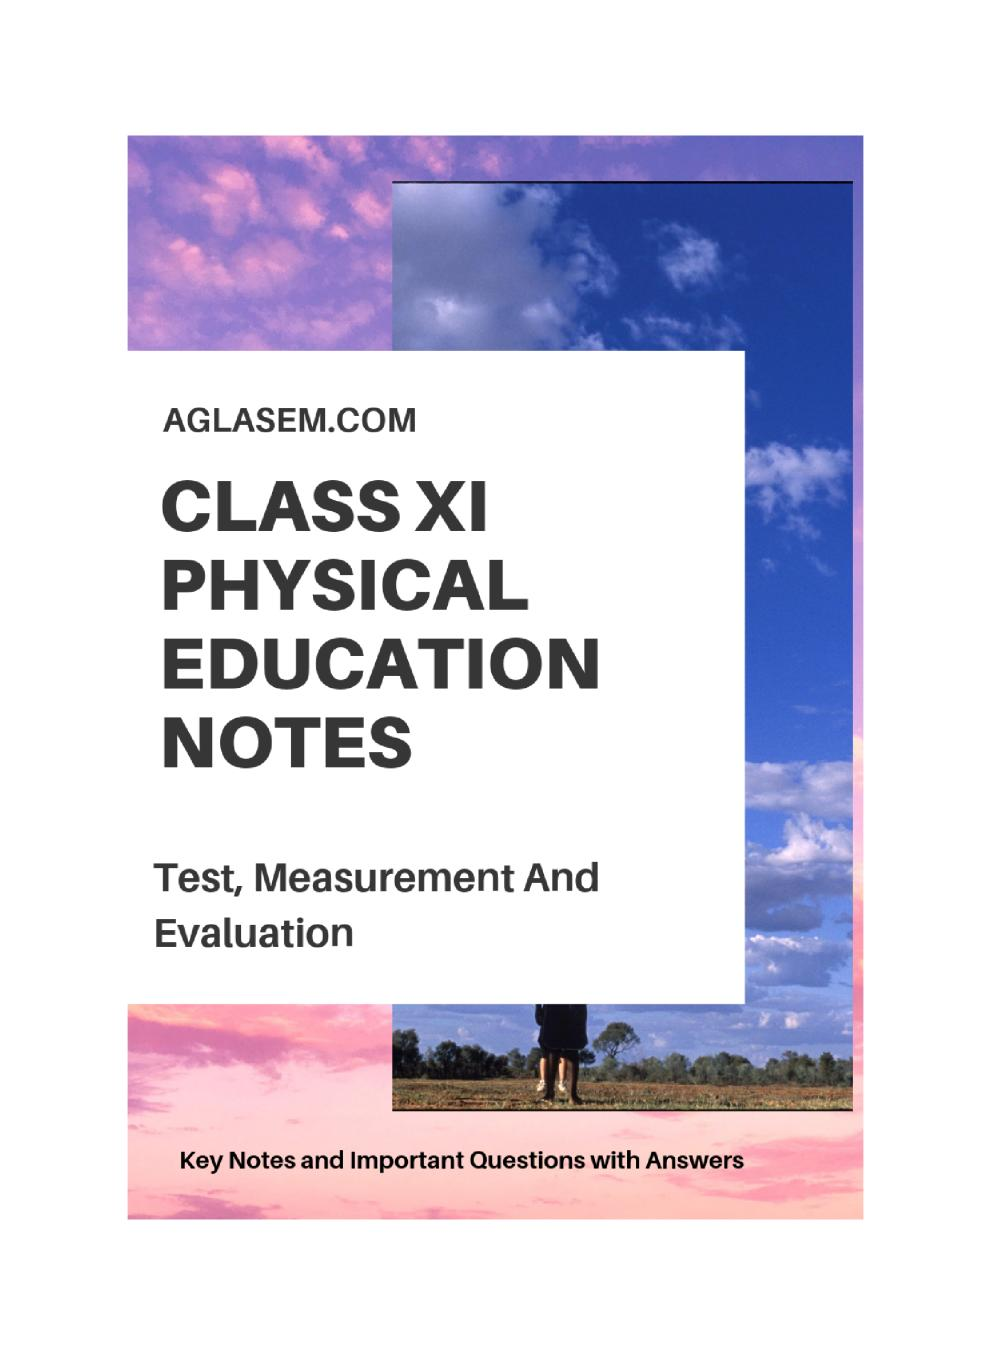 Class 11 Physical Education Notes For Test, Measurement, and Evaluation